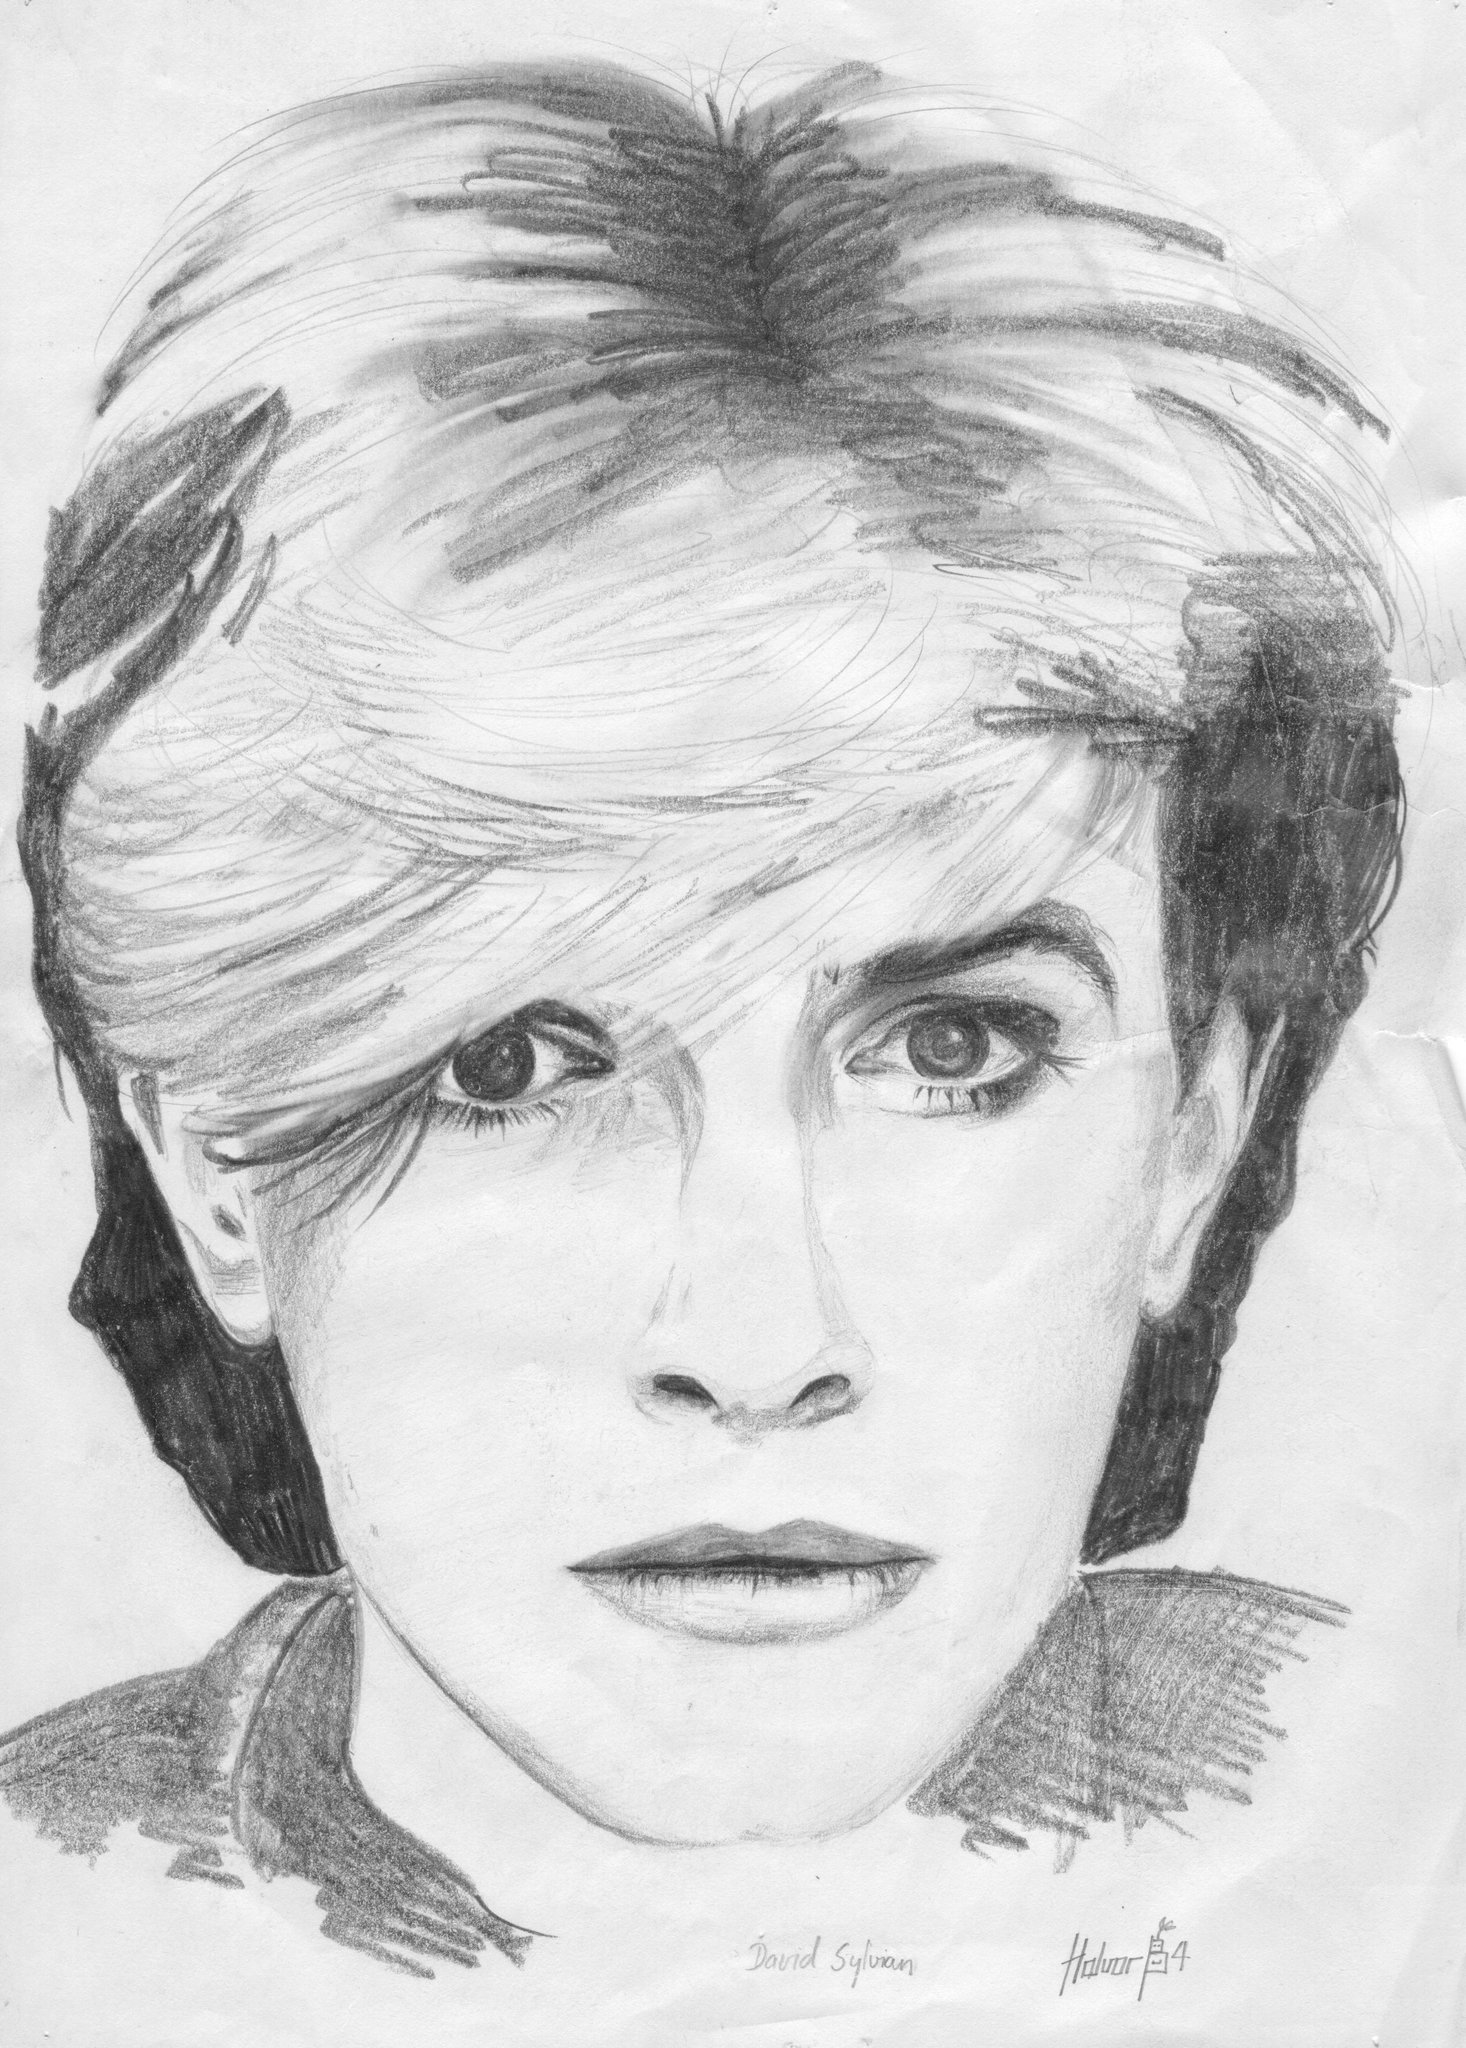 Happy birthday to David Sylvian! This is a fan boy drawing I did in 1984.